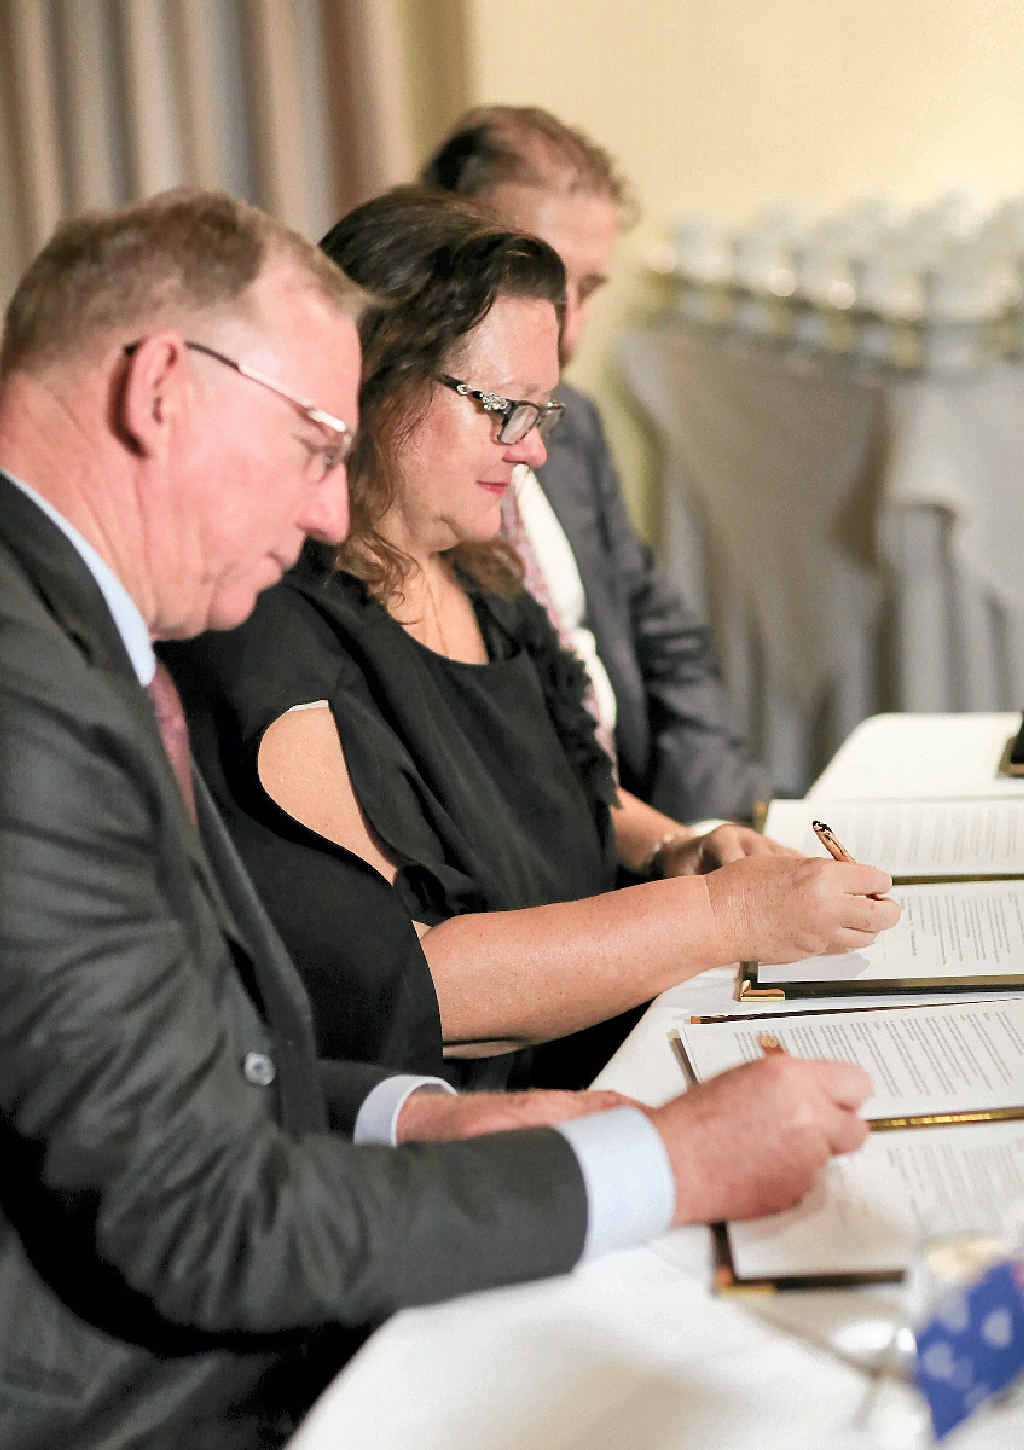 MAJOR INVESTMENT: Gina Rinehart and Deputy Premier Jeff Seeney sign the Memorandum of Understanding for the $500 million deal for Gympie and the South Burnett's dairy project.